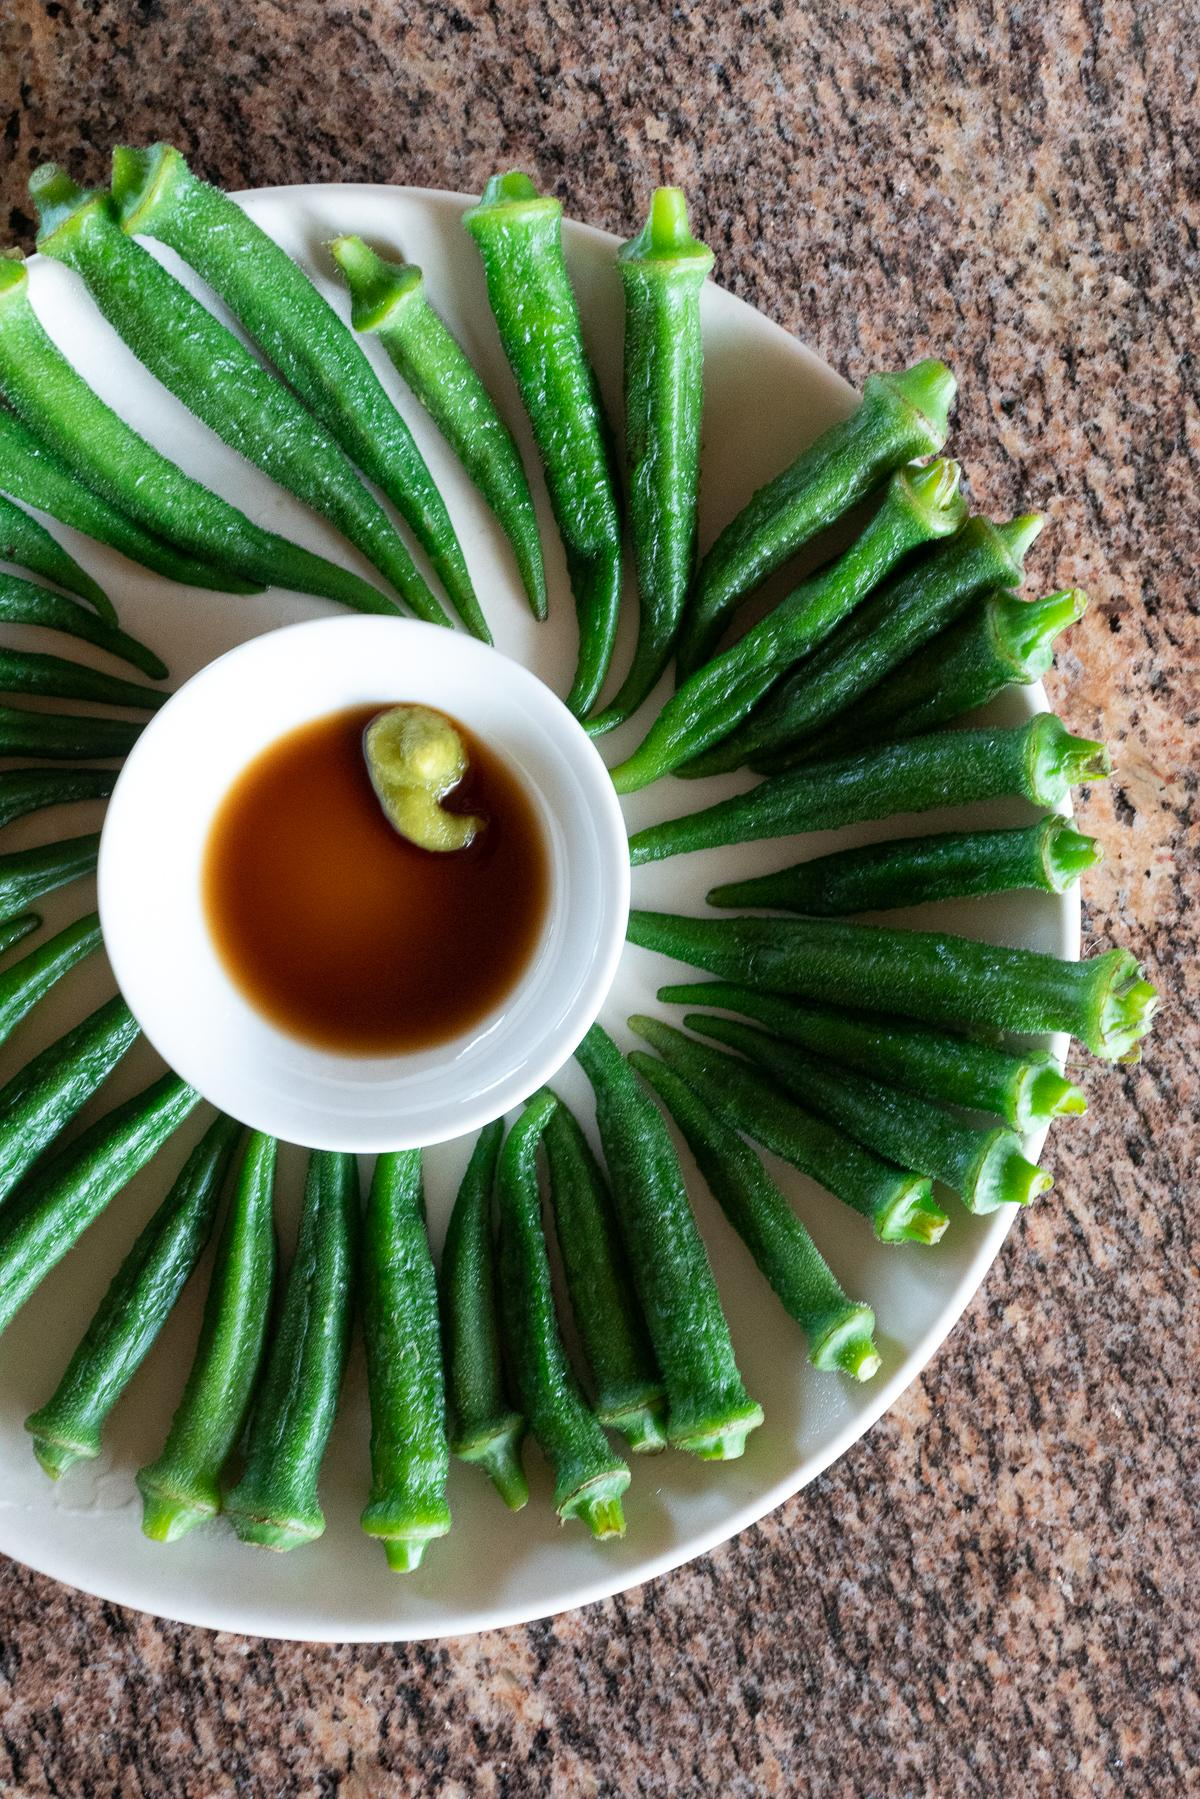 A plate of boiled okra with a small dish of soy sauce and wasabi for dipping.